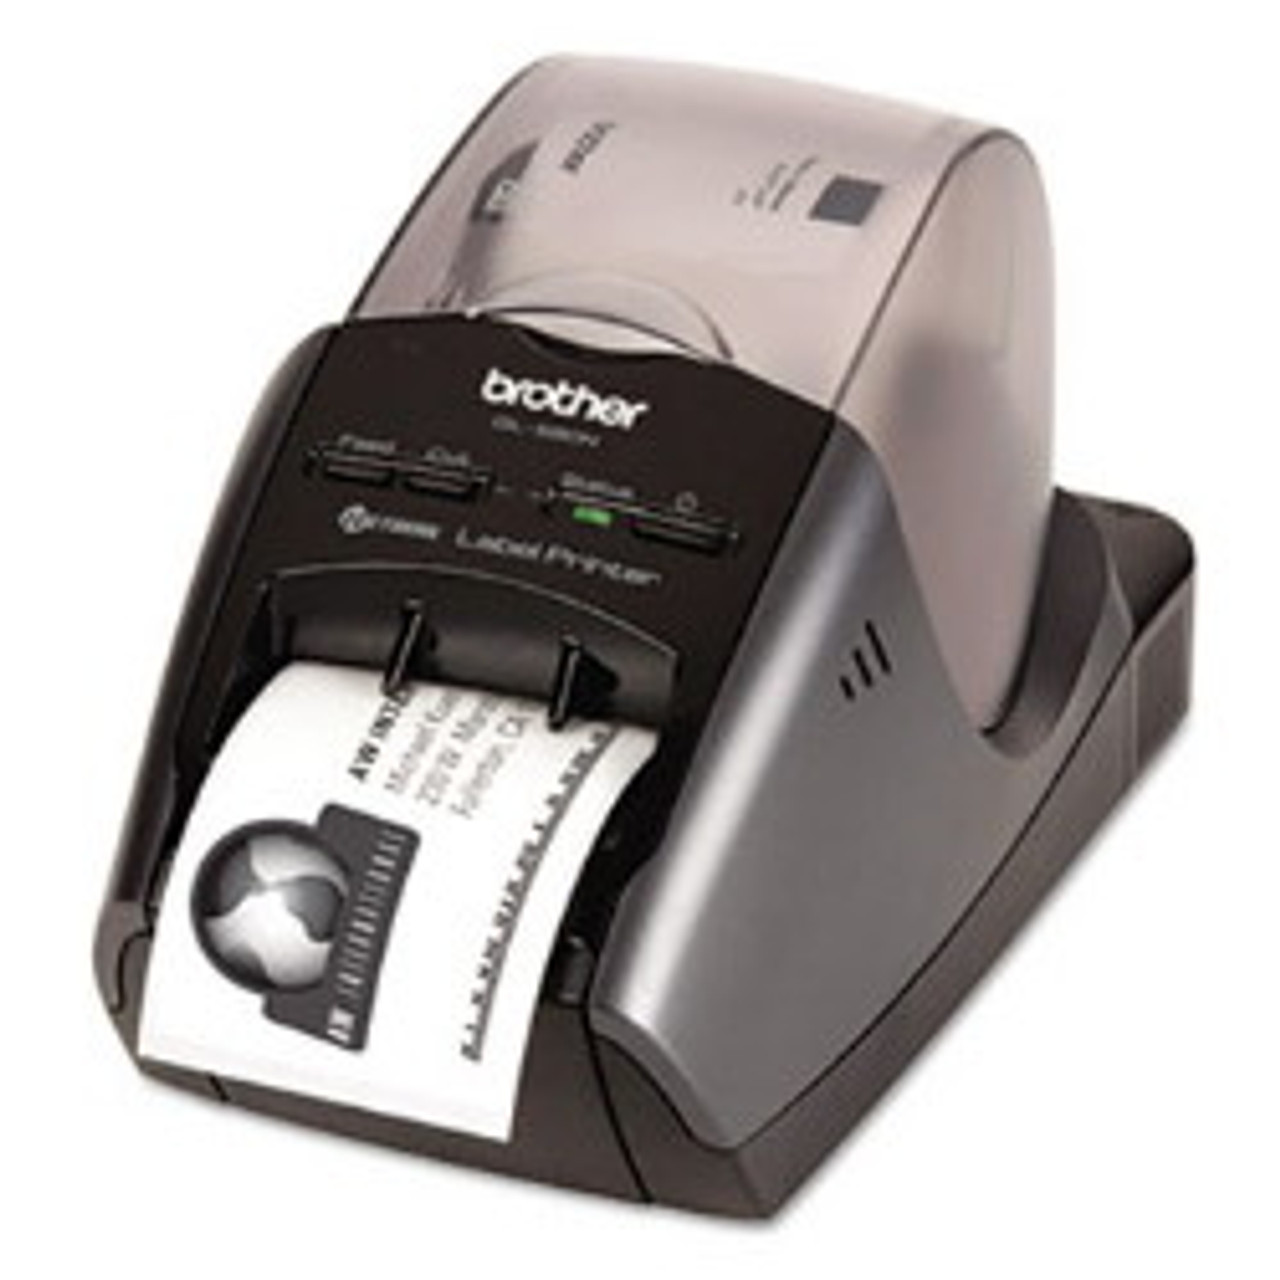 Brother QL580N Label Printer